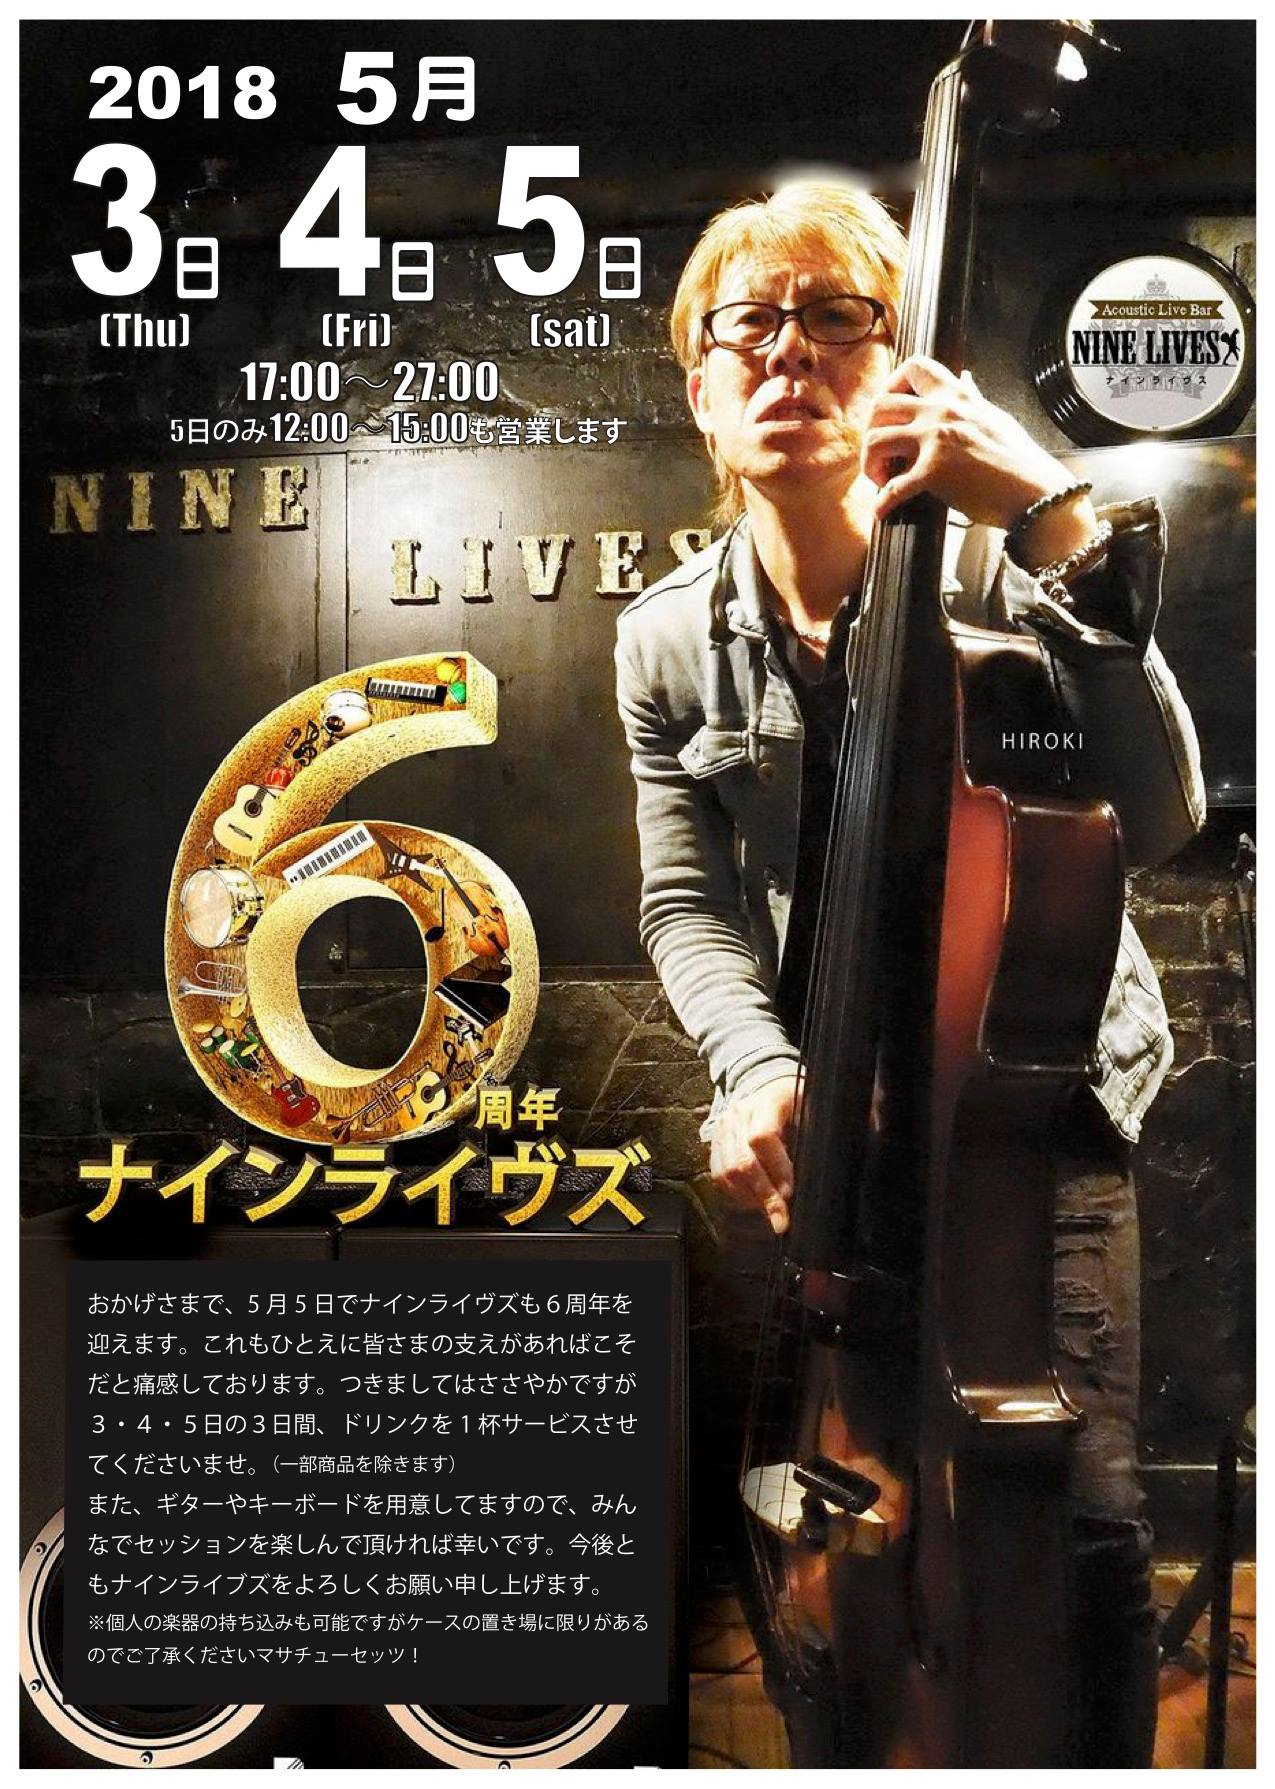 NINE LIVES 6th Anniversary